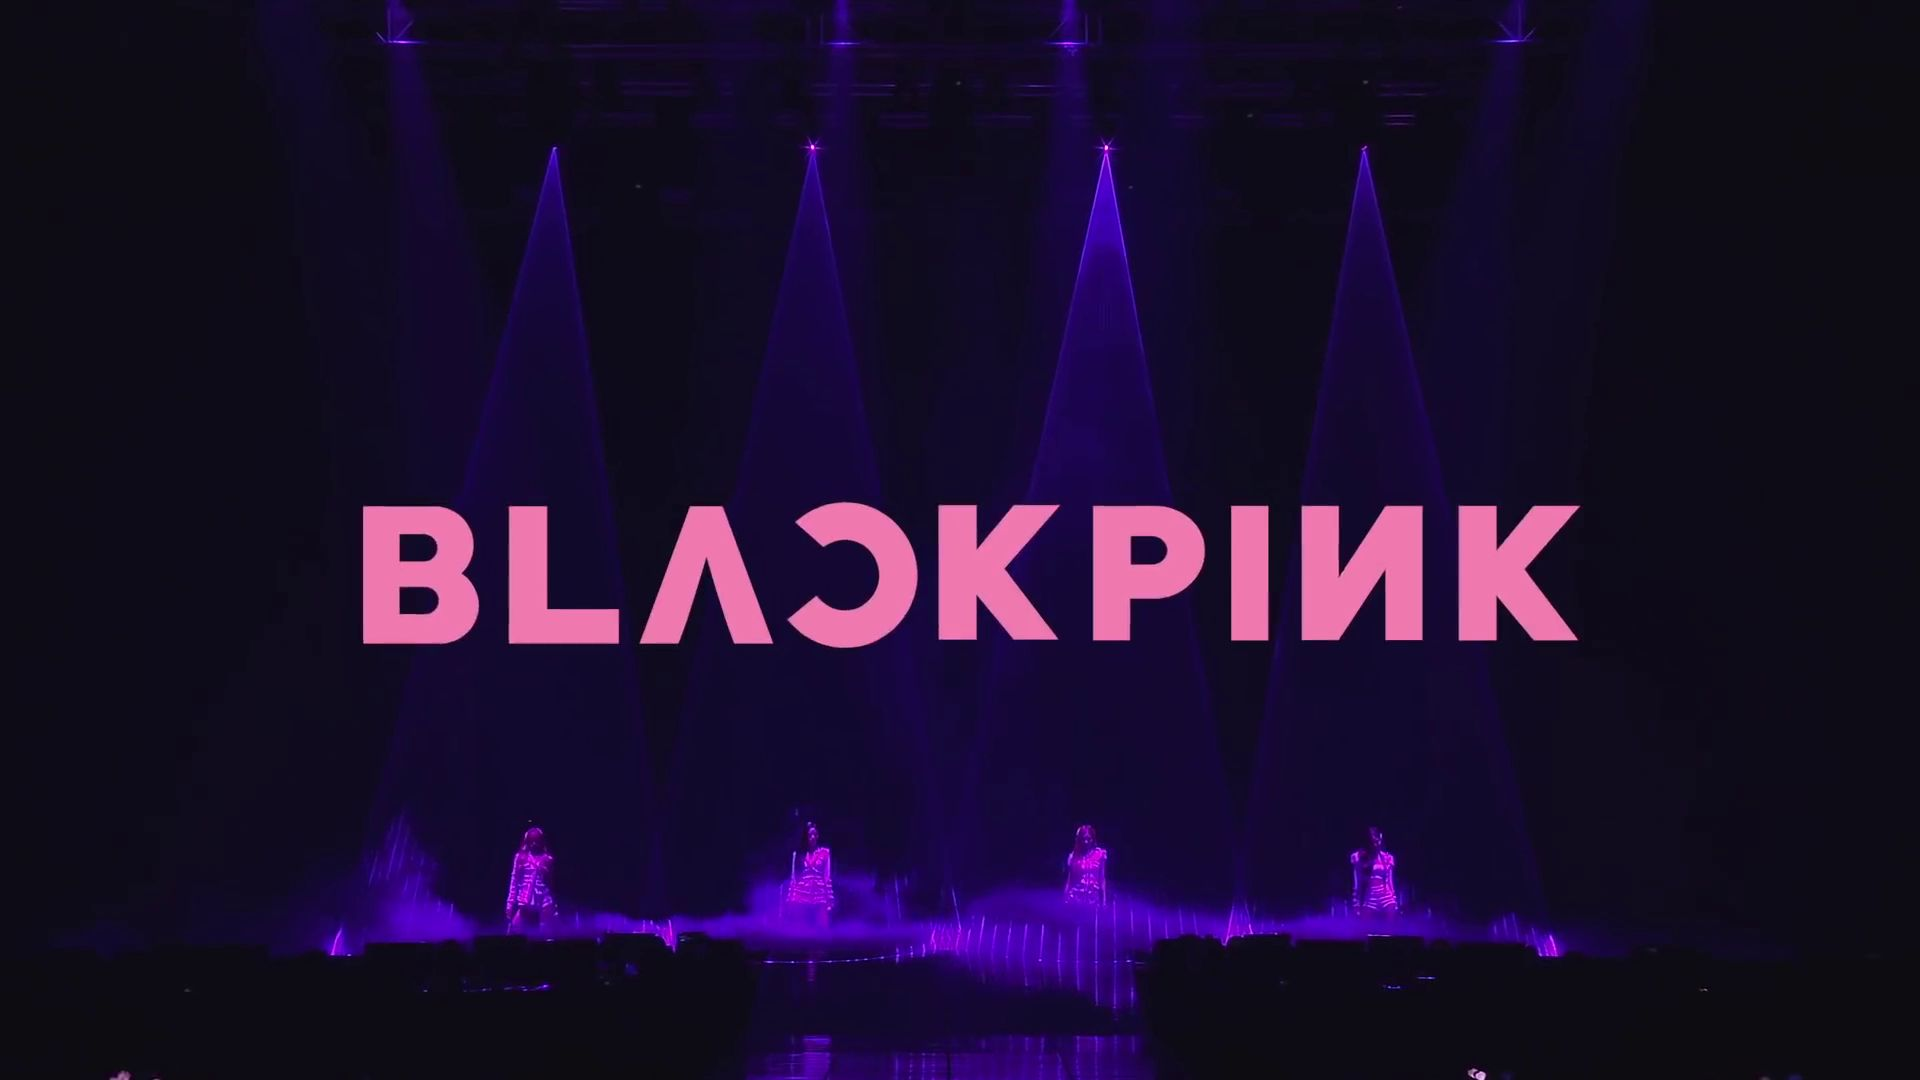 Blackpink Logo Wallpaper